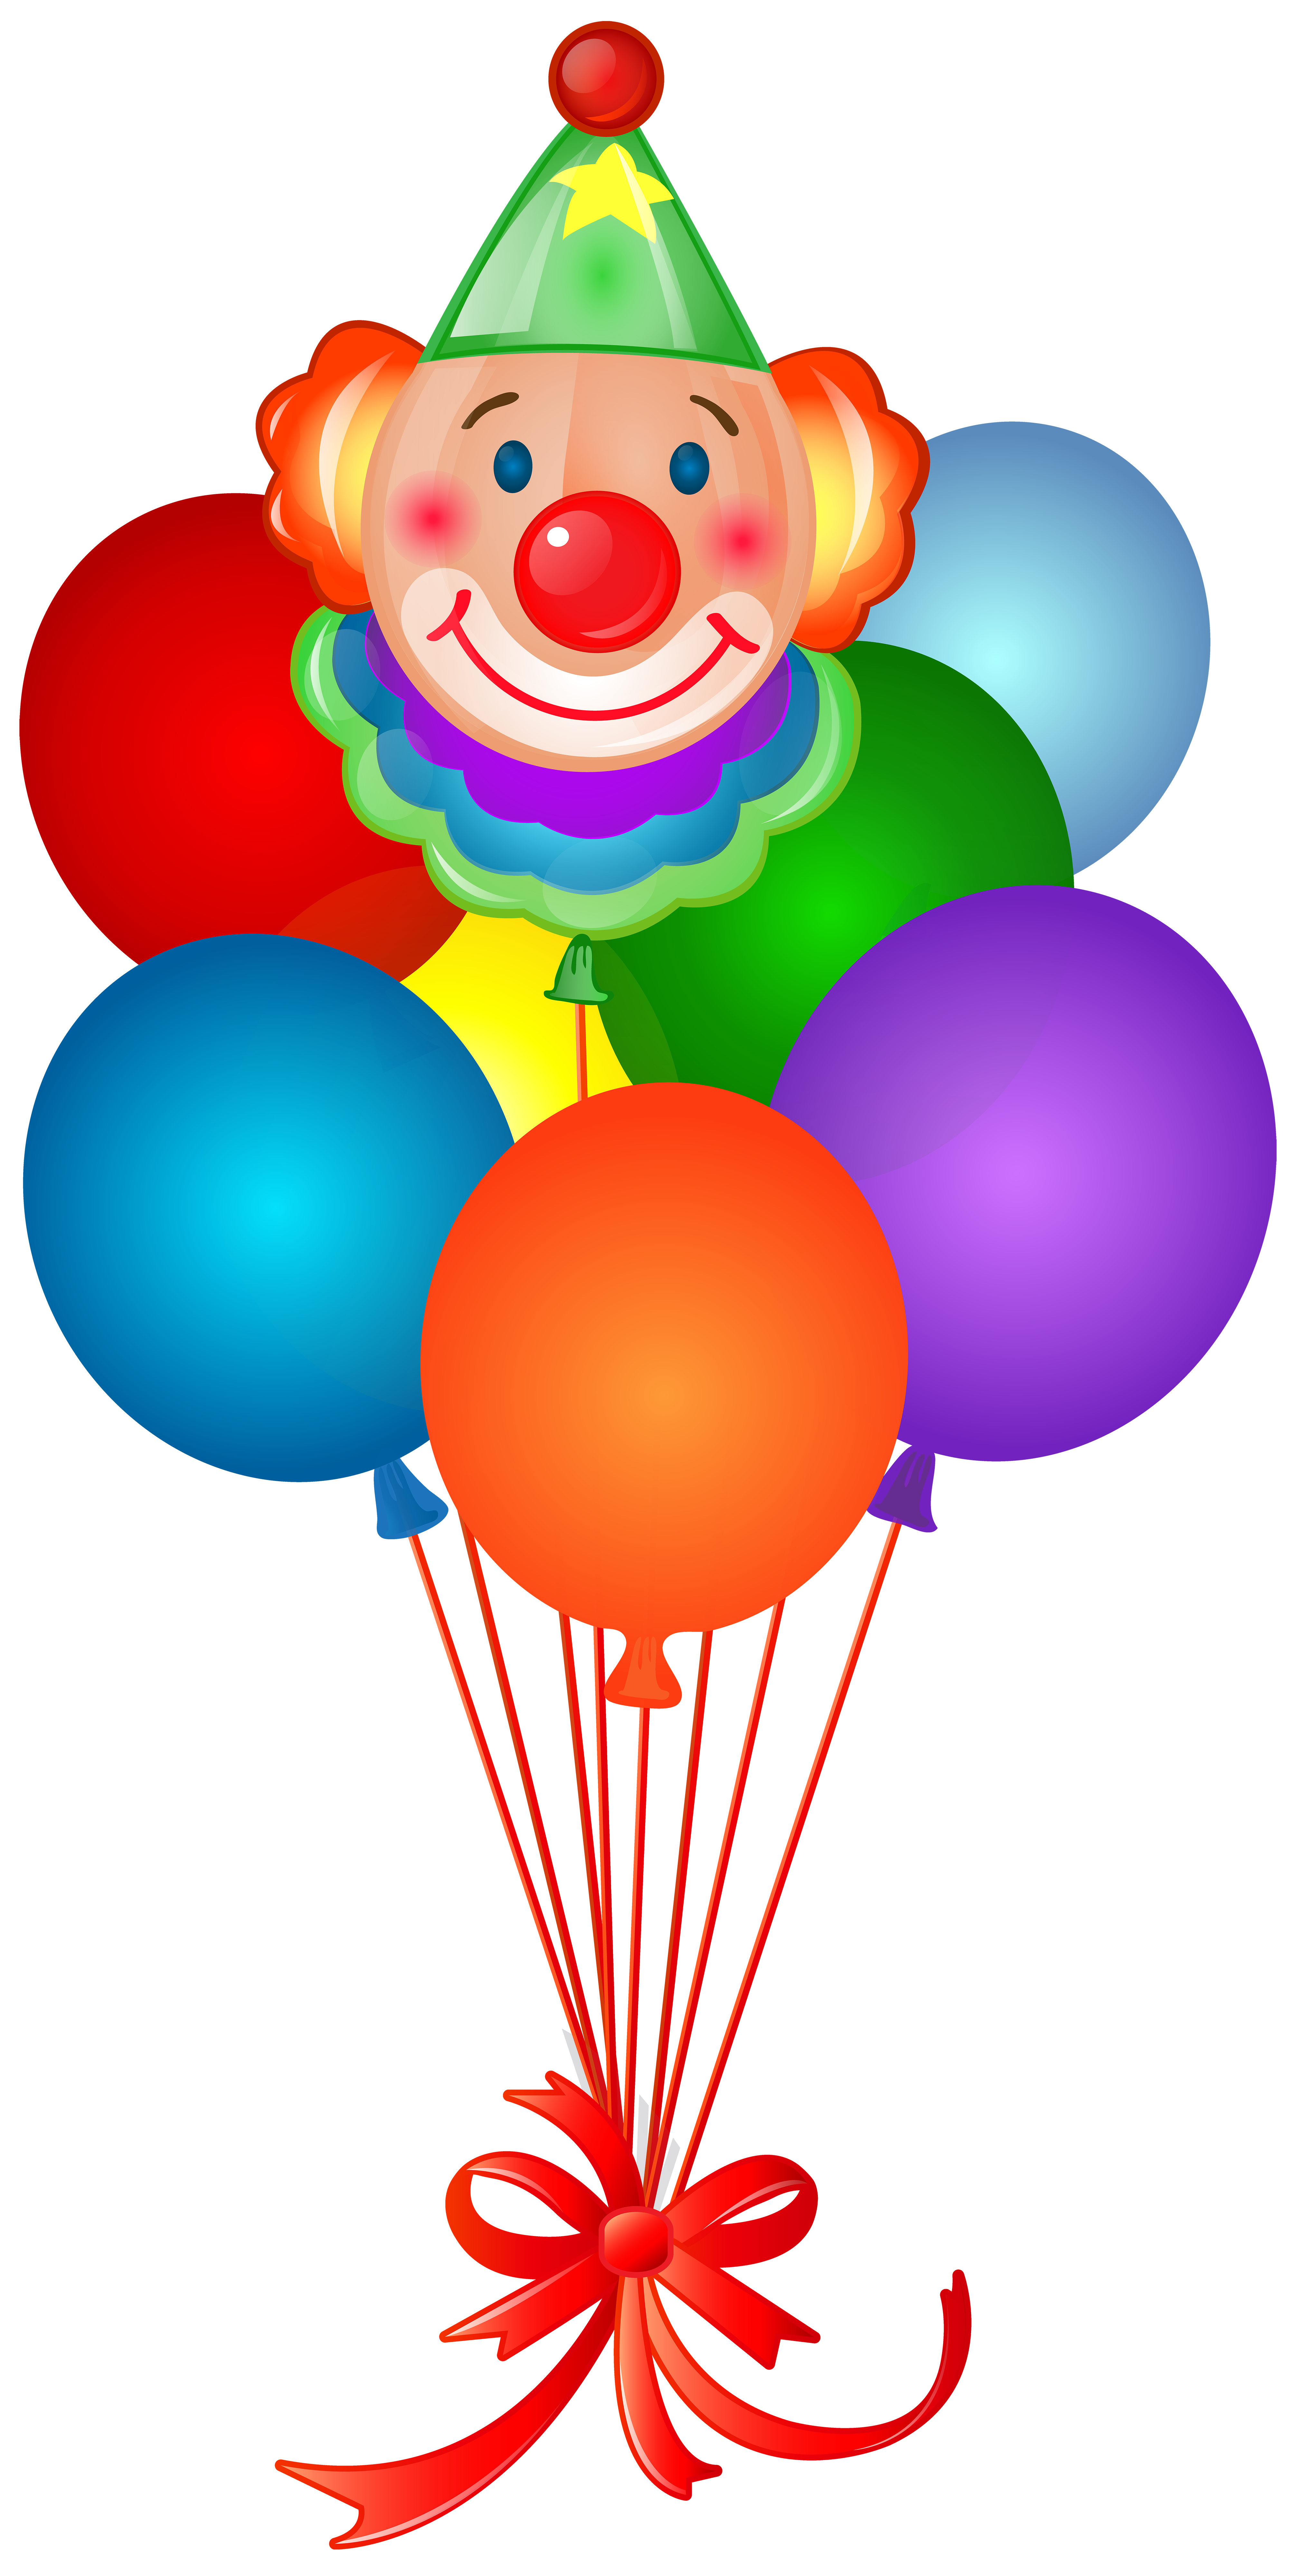 Clipart balloon clown. Birthday balloons with png